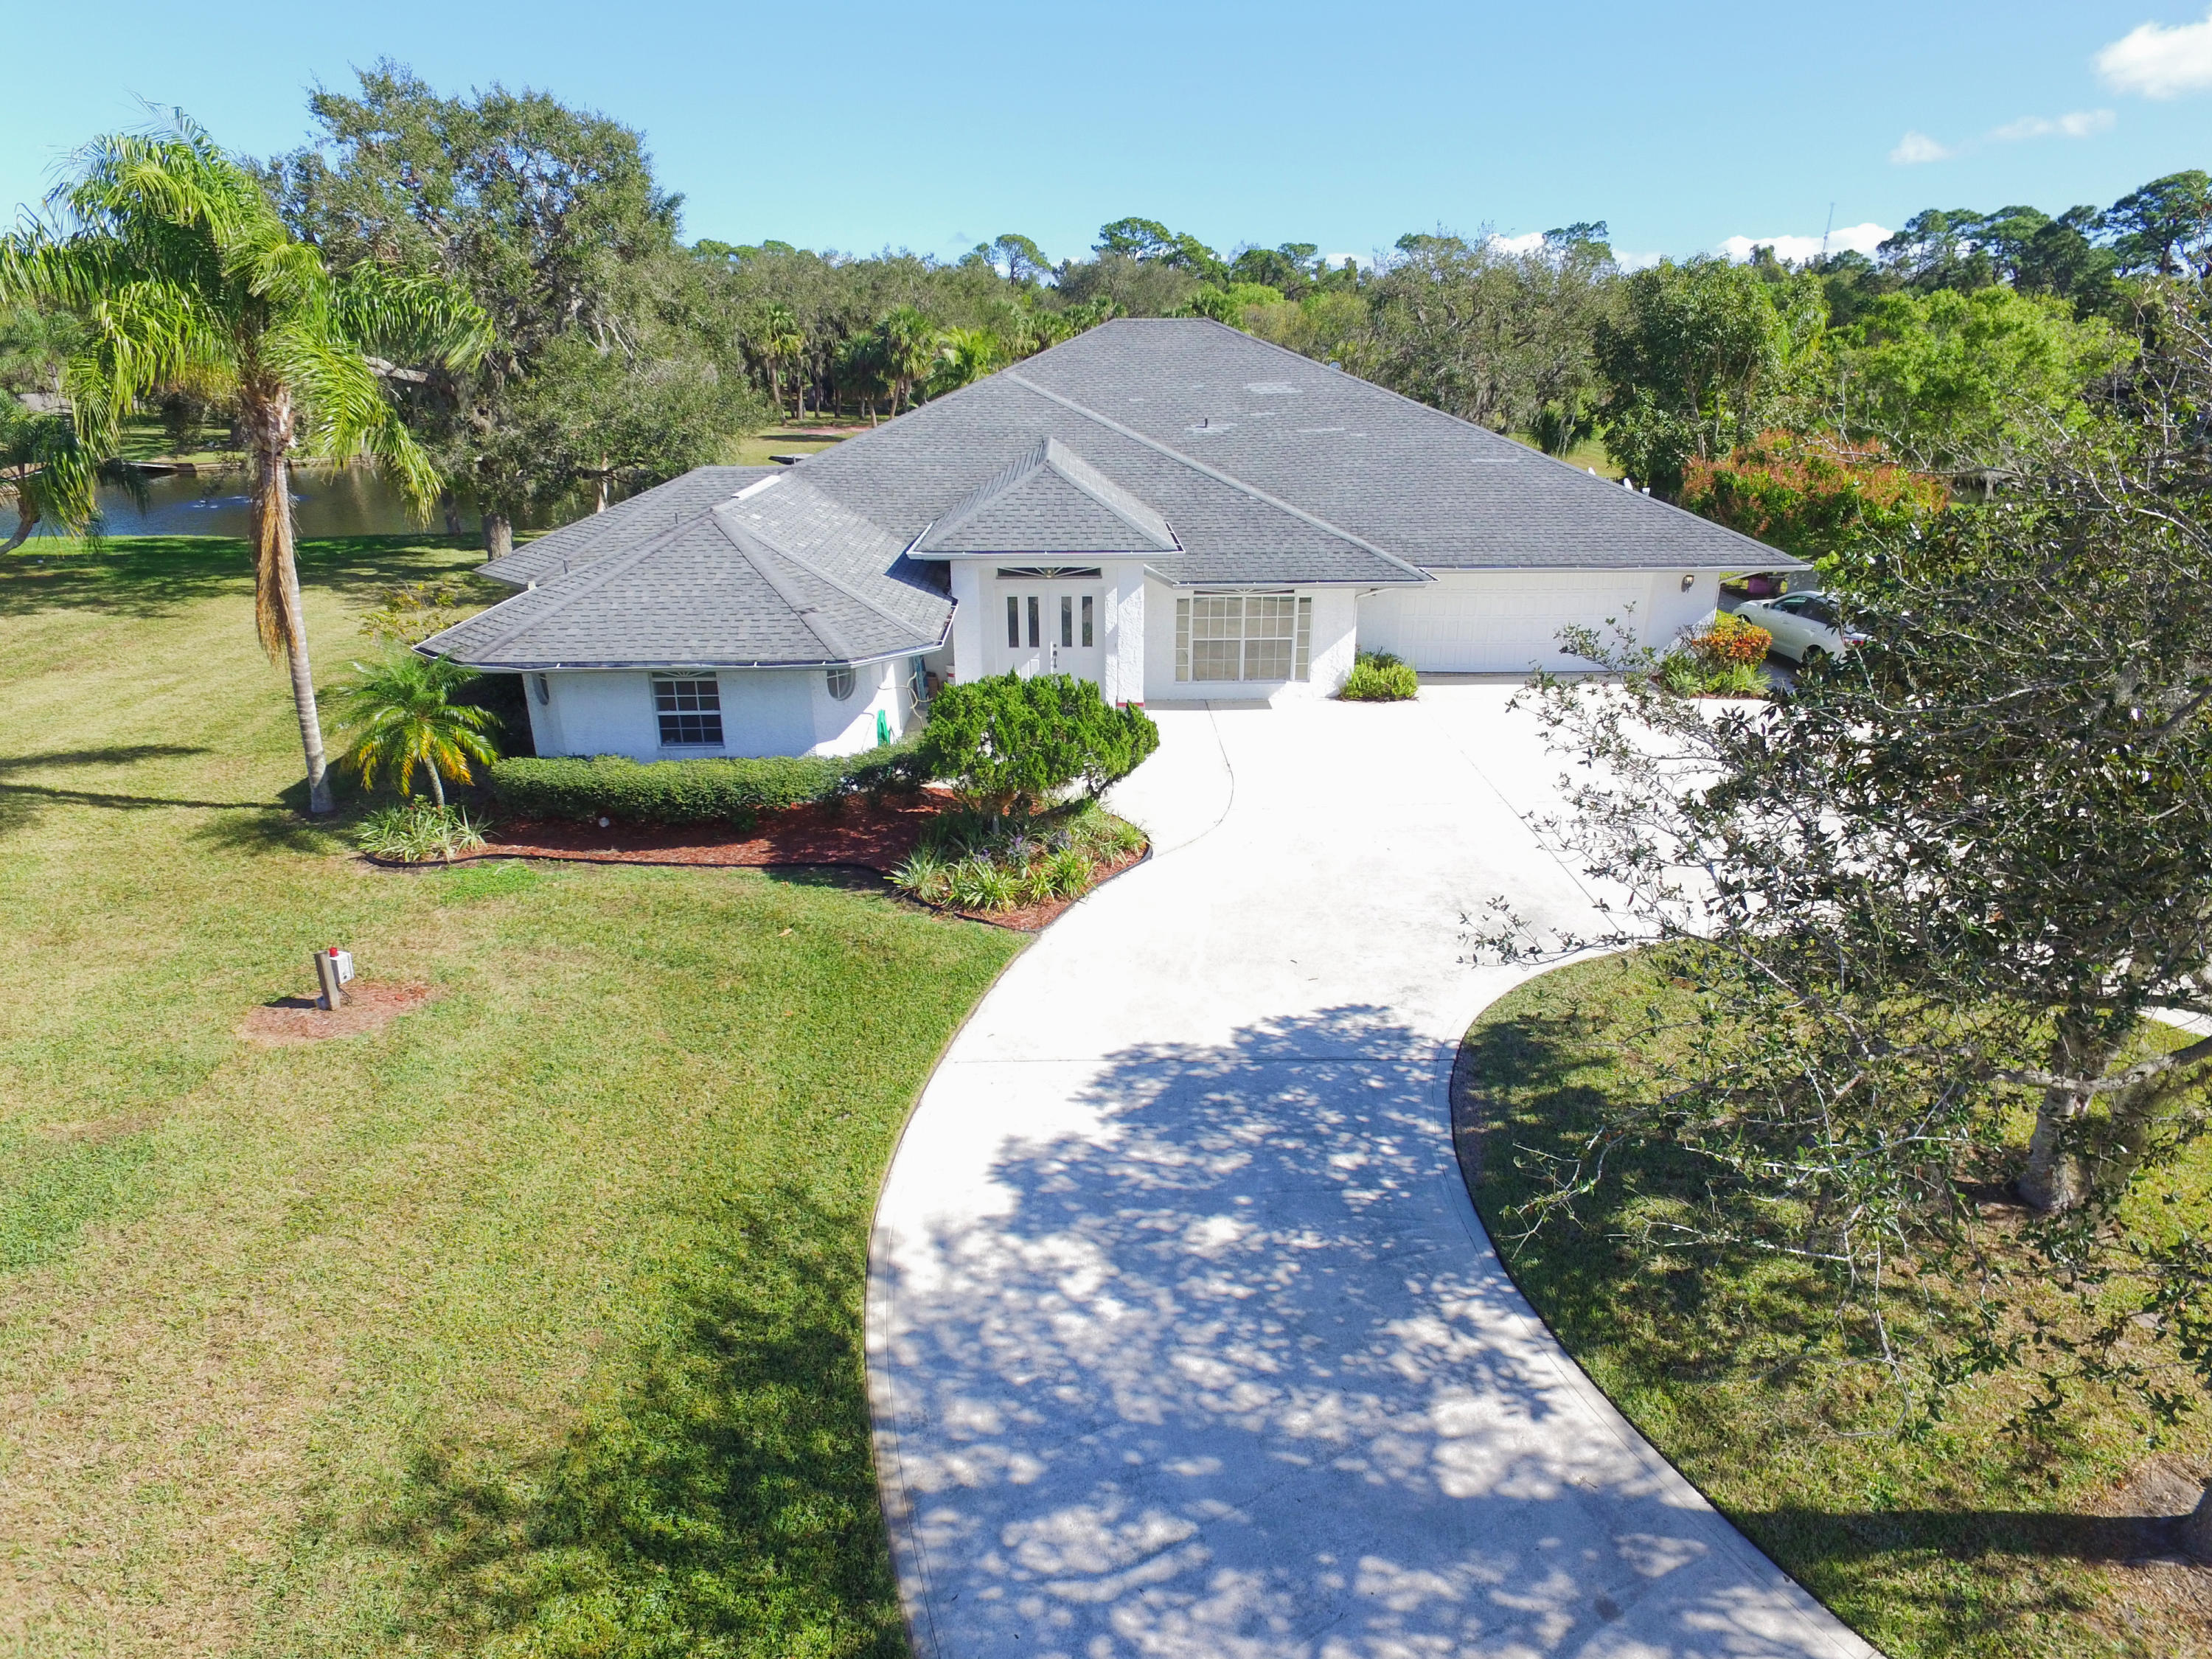 Home for sale in 28 35 40 from Fort Pierce Florida